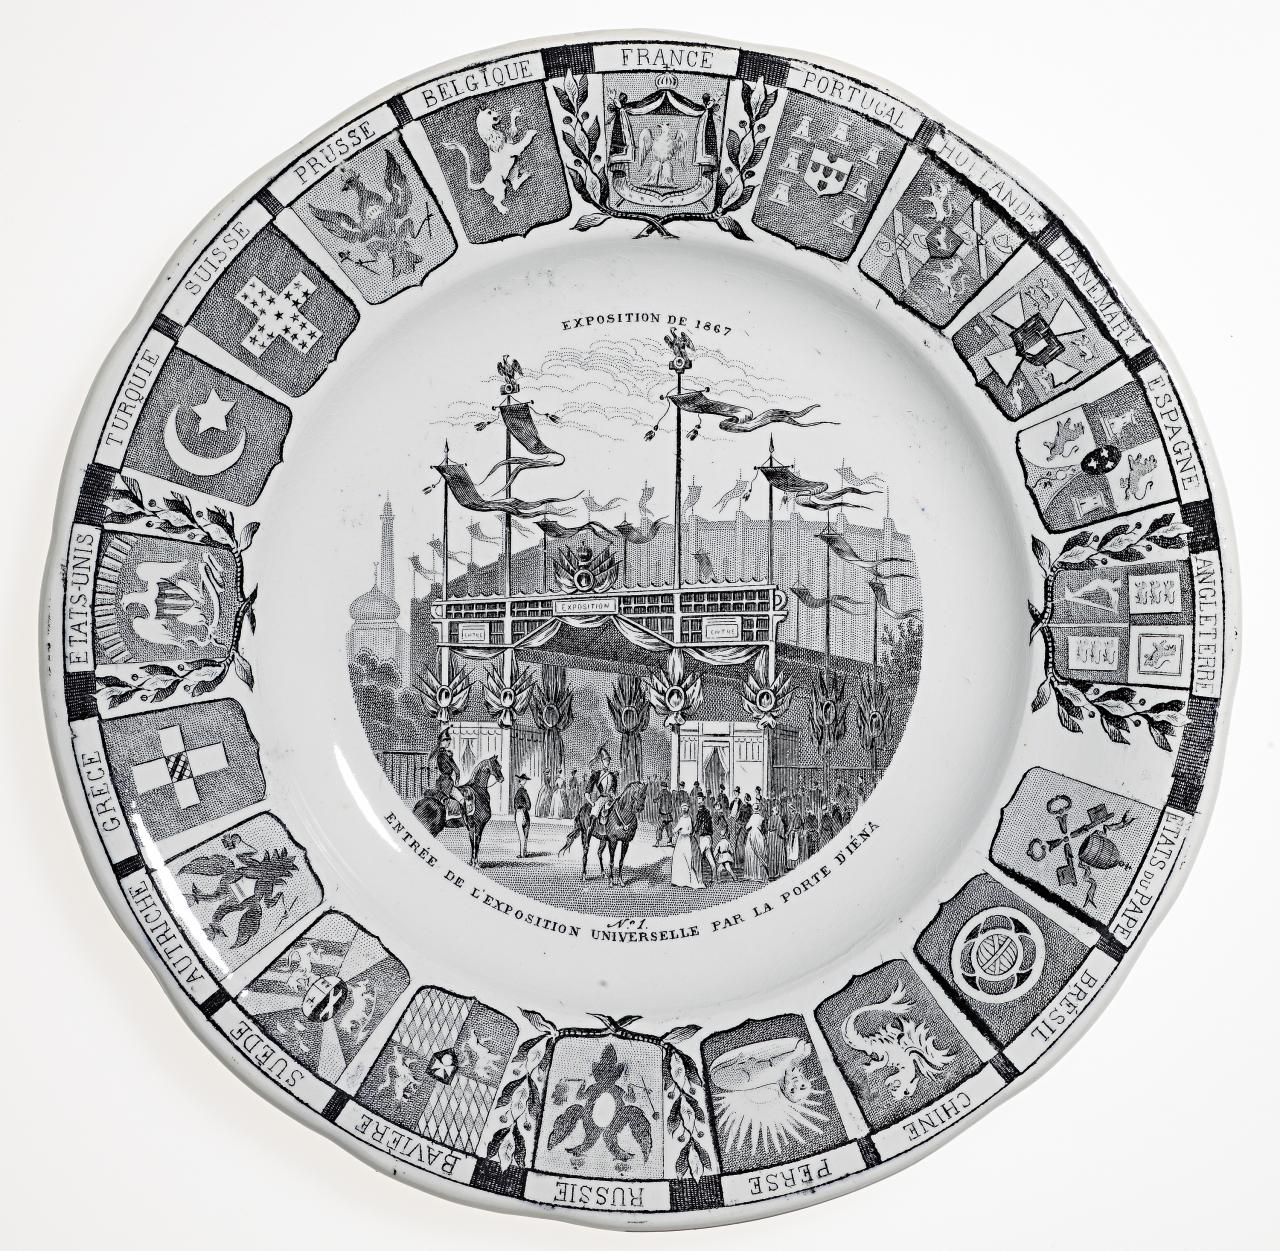 Universal Exposition, Paris. No. 1. Entrance of the Universal Exposition by the Jena Gate, commemorative plate